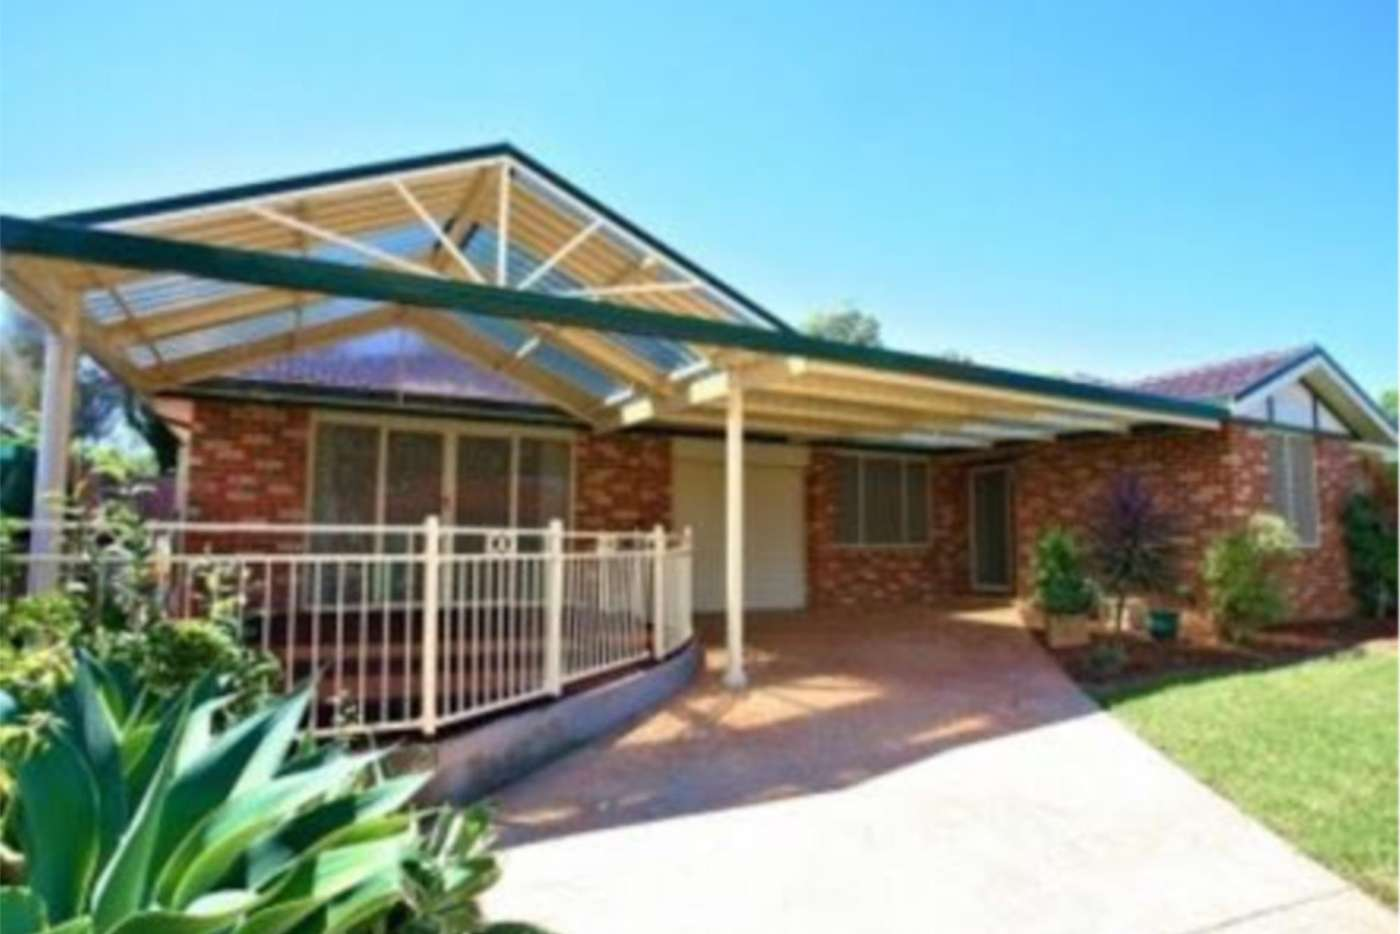 Main view of Homely studio listing, 21A Wilberforce Road, Revesby NSW 2212